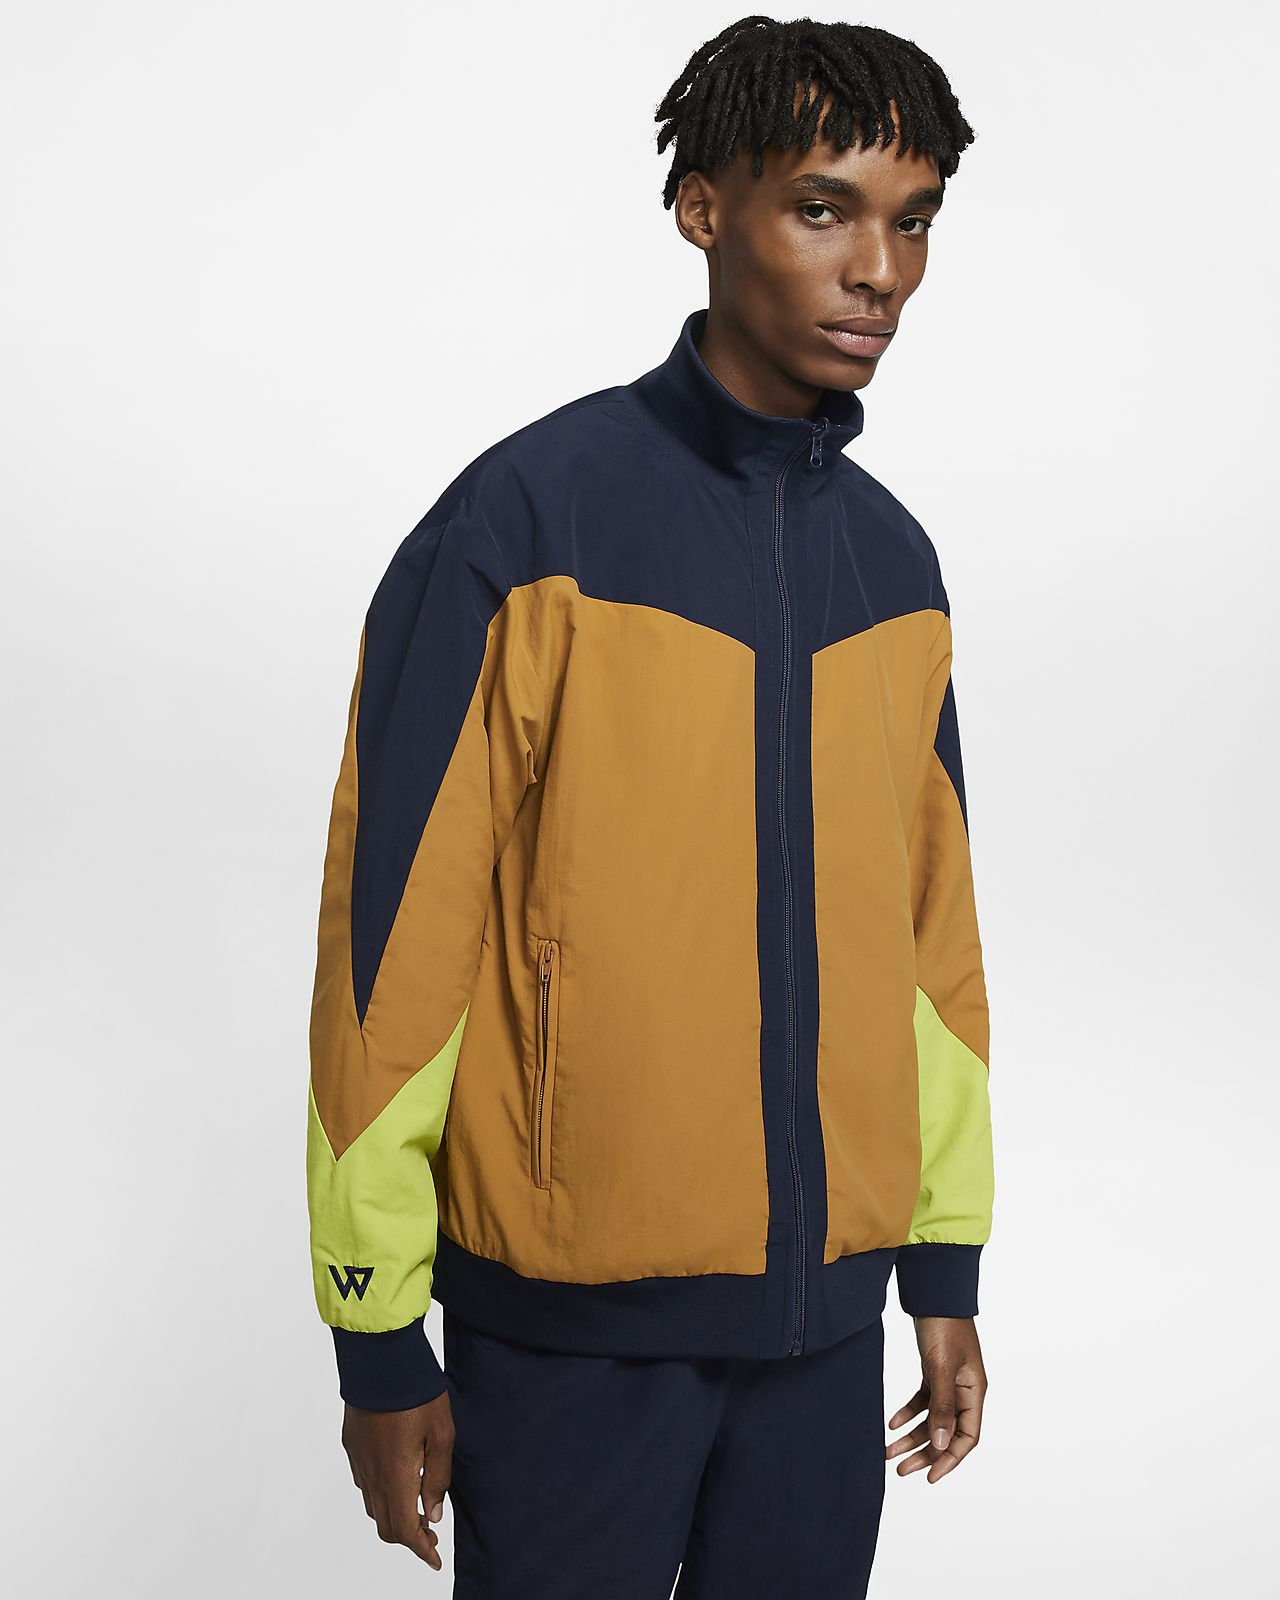 Russell Westbrook x Opening Ceremony Men's Reversible Track Jacket